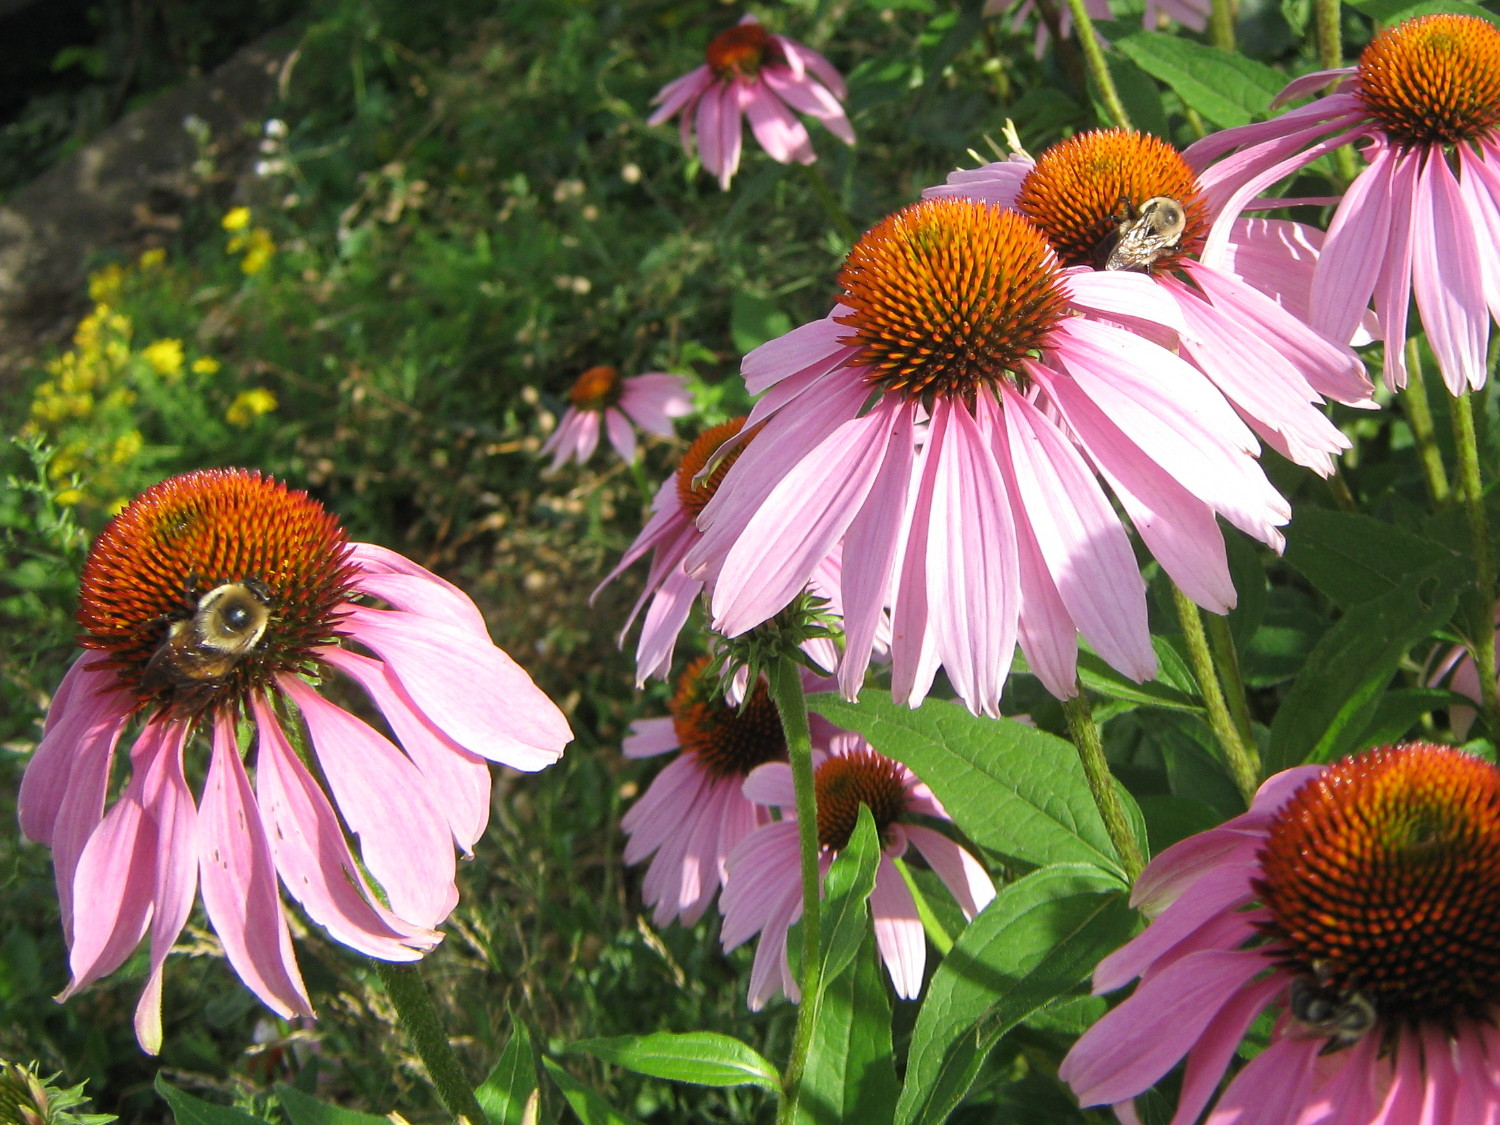 Bumblebees on coneflowers